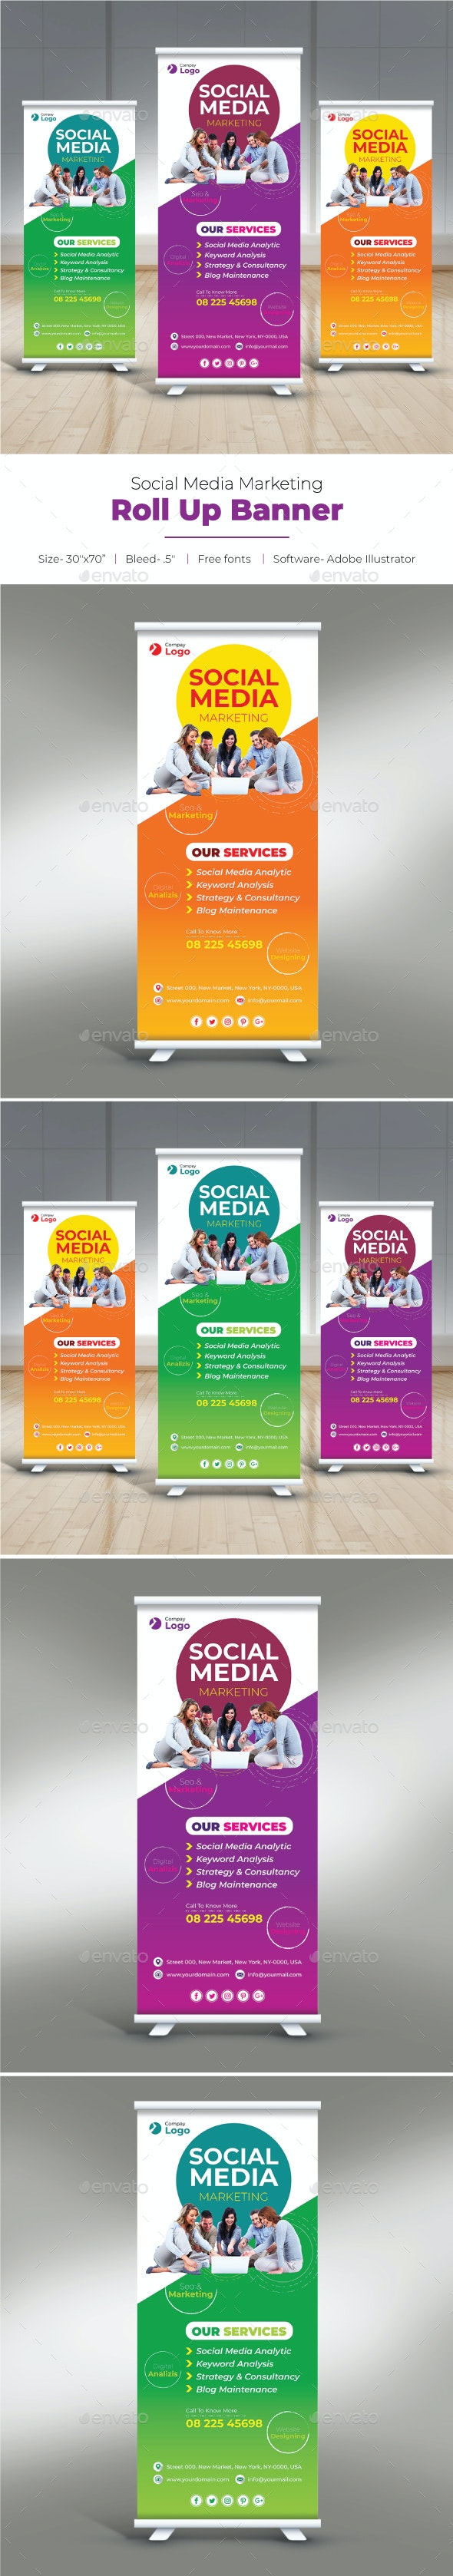 Social Media Marketing Roll Up Banner - Signage Print Templates